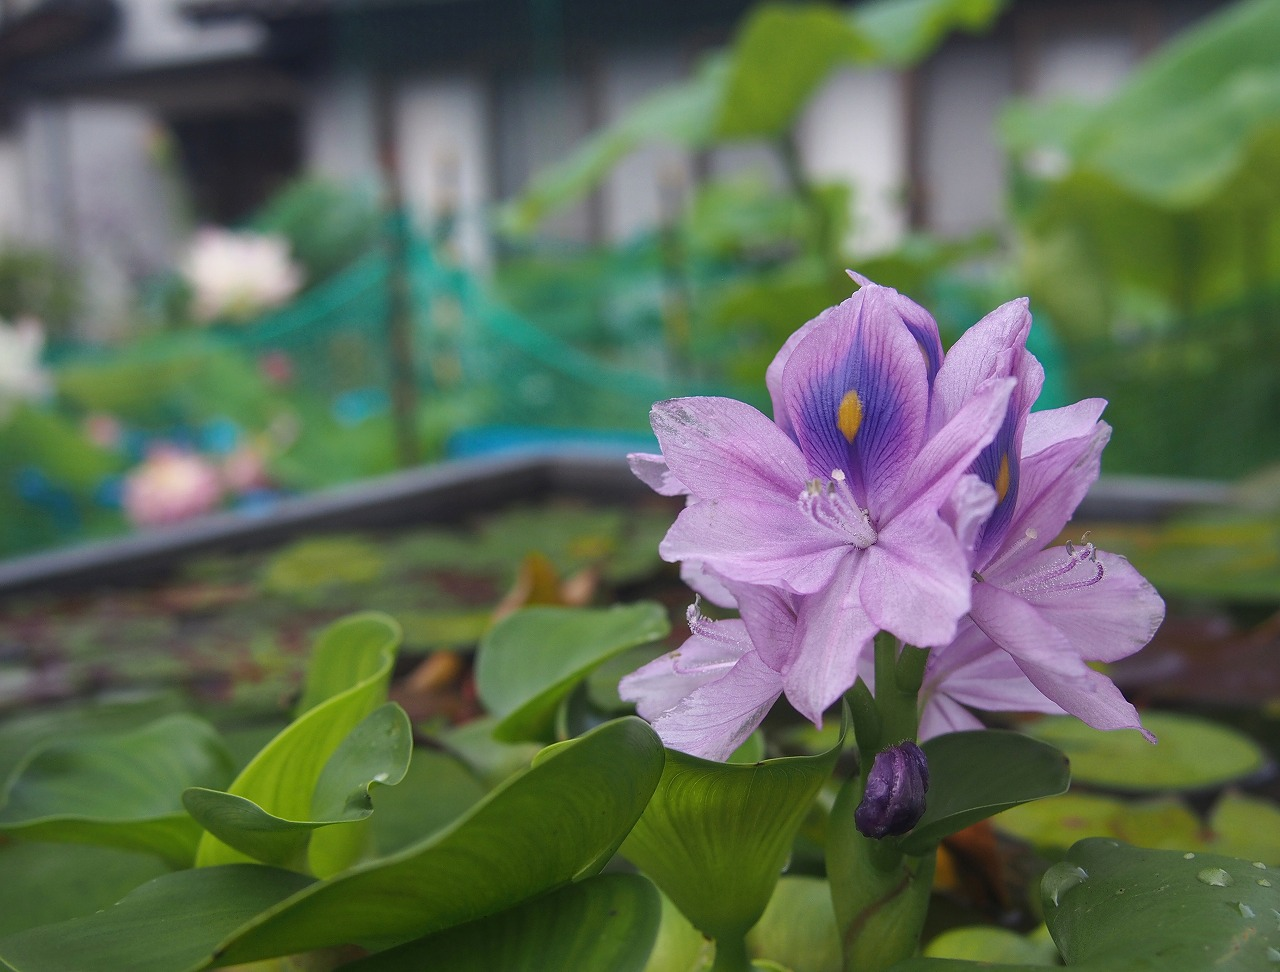 20170701-CommonWaterHyacinth-O01.jpg